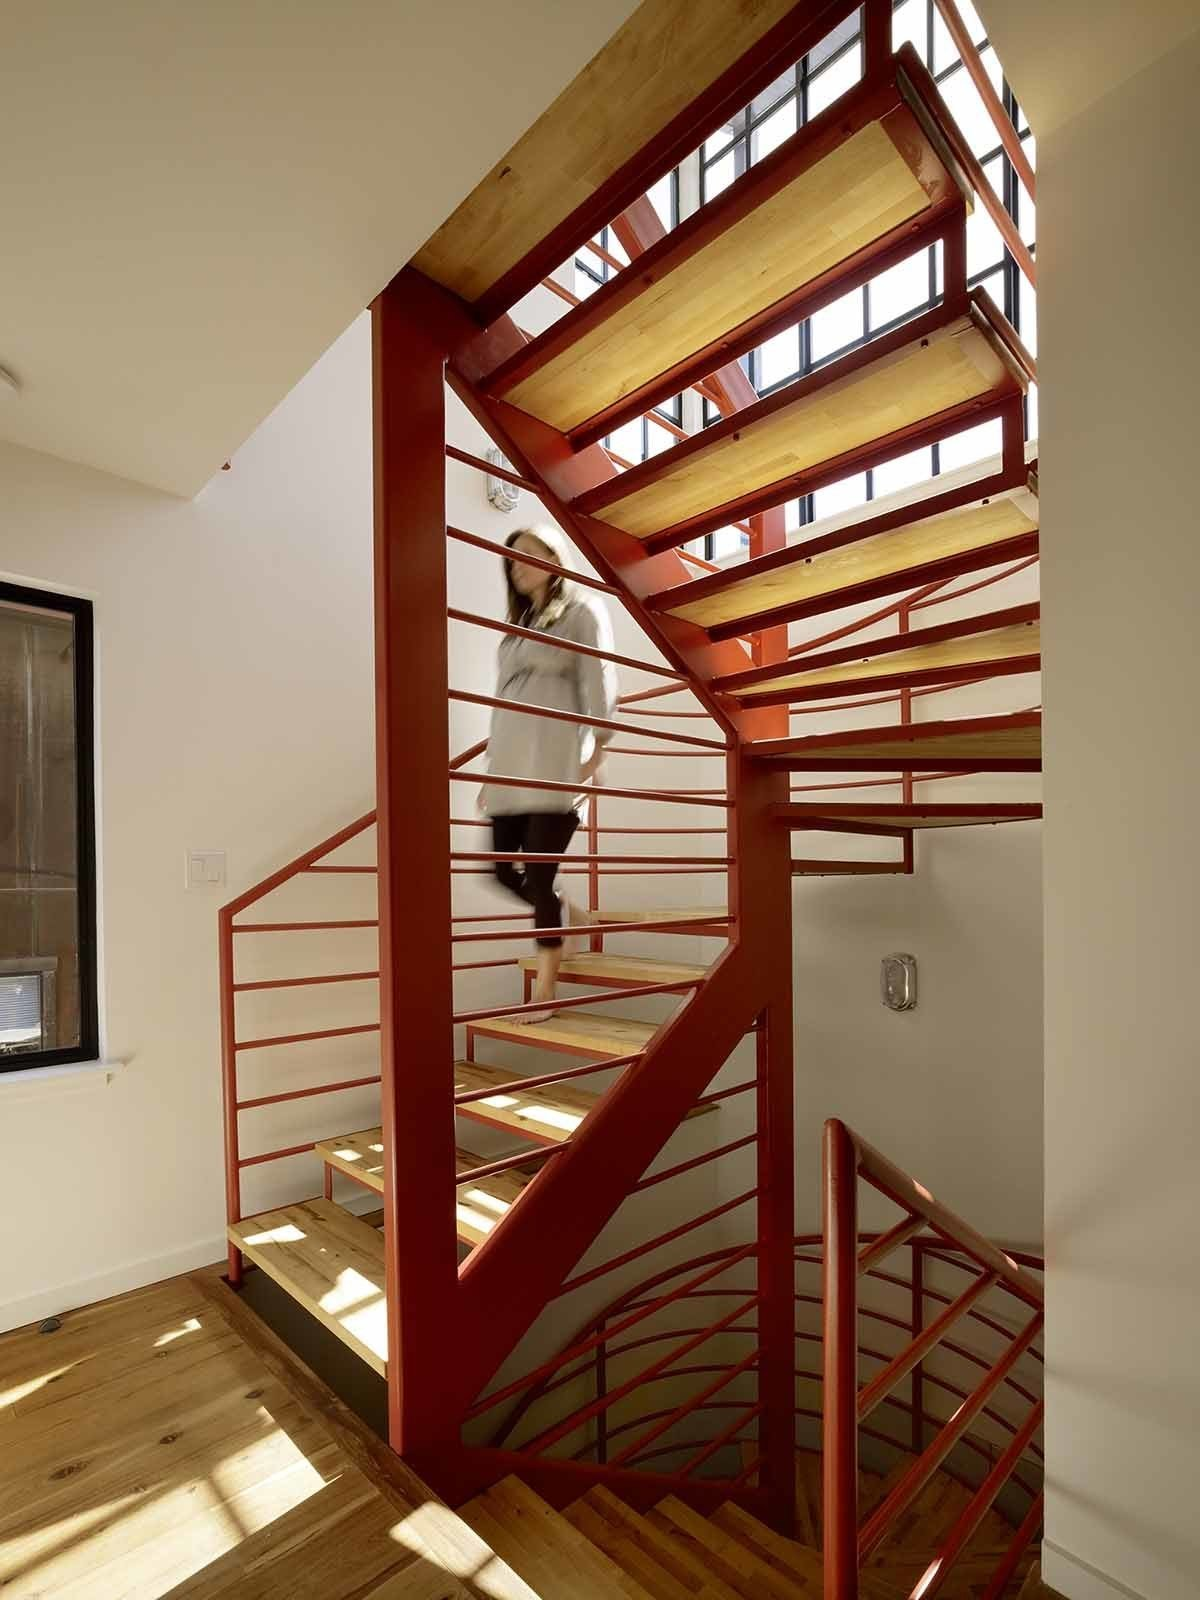 "Staircase, Metal Railing, and Wood Tread Fabricated by Stocklin Iron Works and designed by Nebolon, the orange staircase features steel railings and treads made from IKEA wood butcher blocks. ""We designed the open staircase to make the trip to the second floor fun,"" the architect says.  Best Photos from Like a Loft on Water"